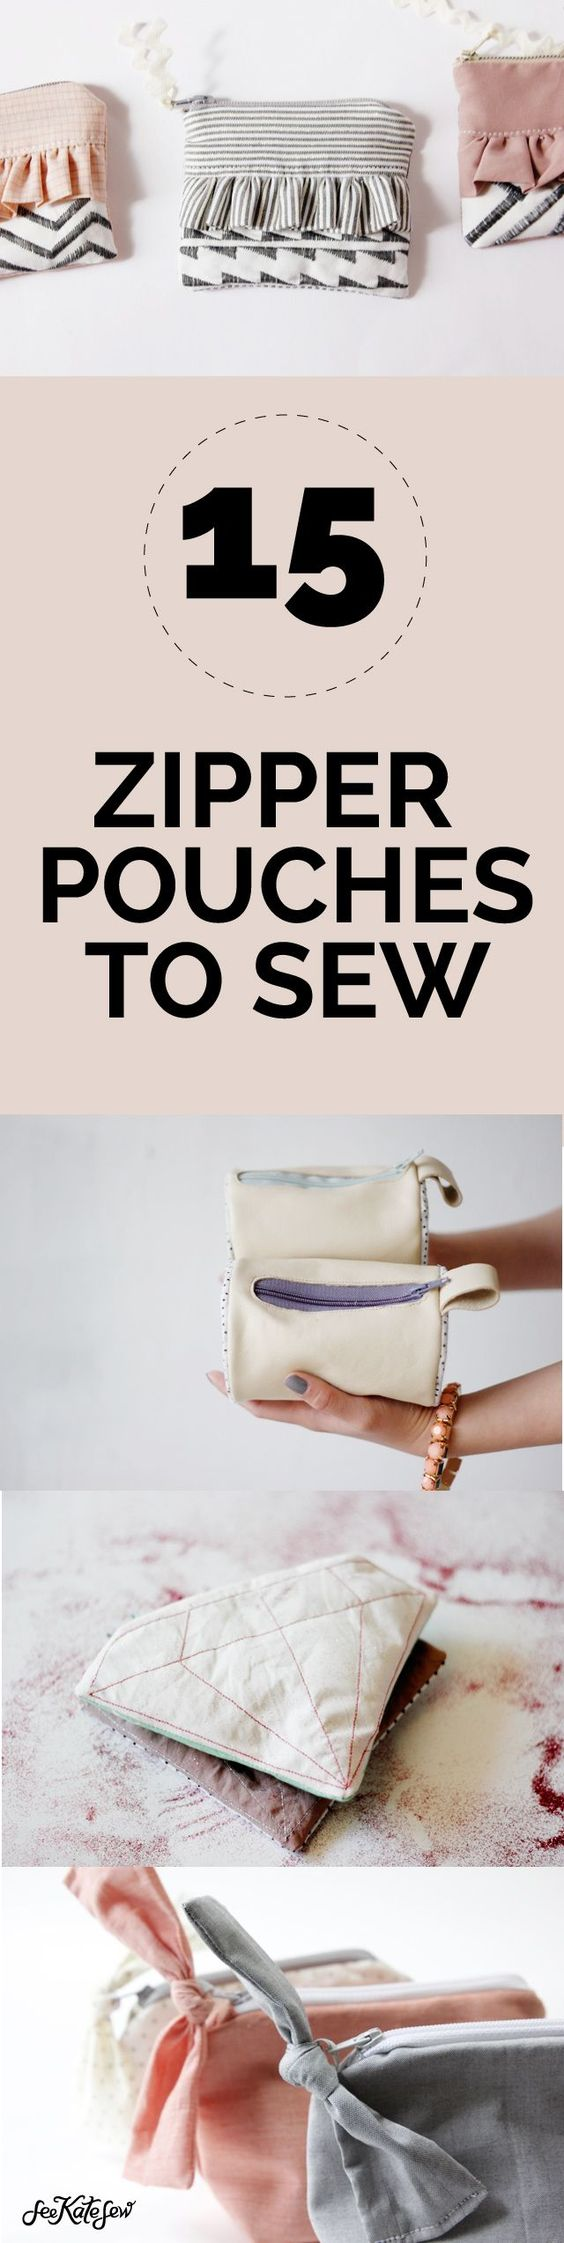 15 Zipper Pouch Tutorials | DIY Sewing Instructions on How to Sew Small Zipper Bags